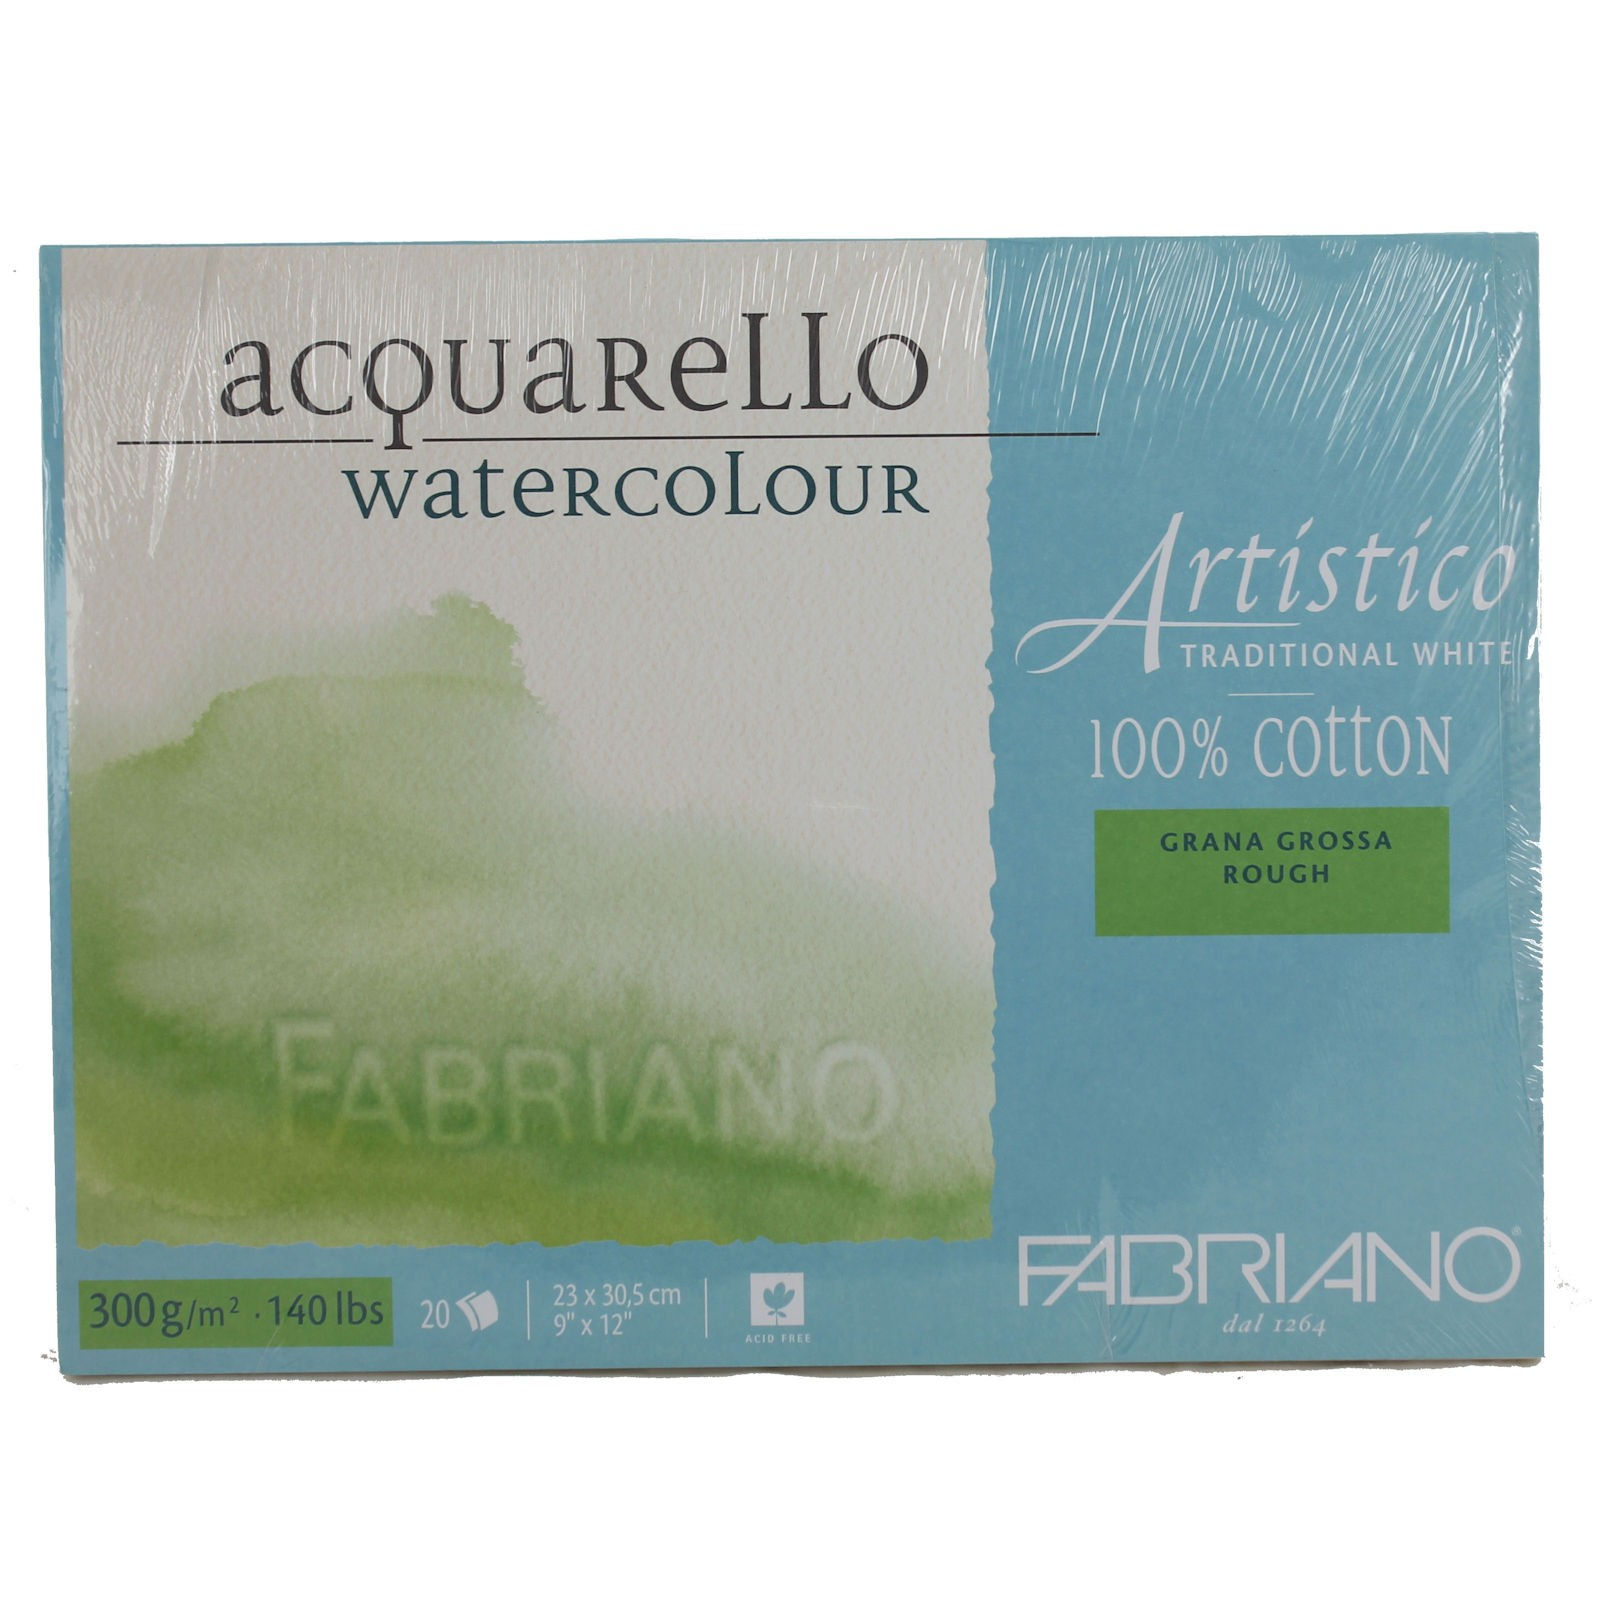 Fabriano Artistico Watercolour Block Pad 100% Cotton Rough 300gsm assorted sizes